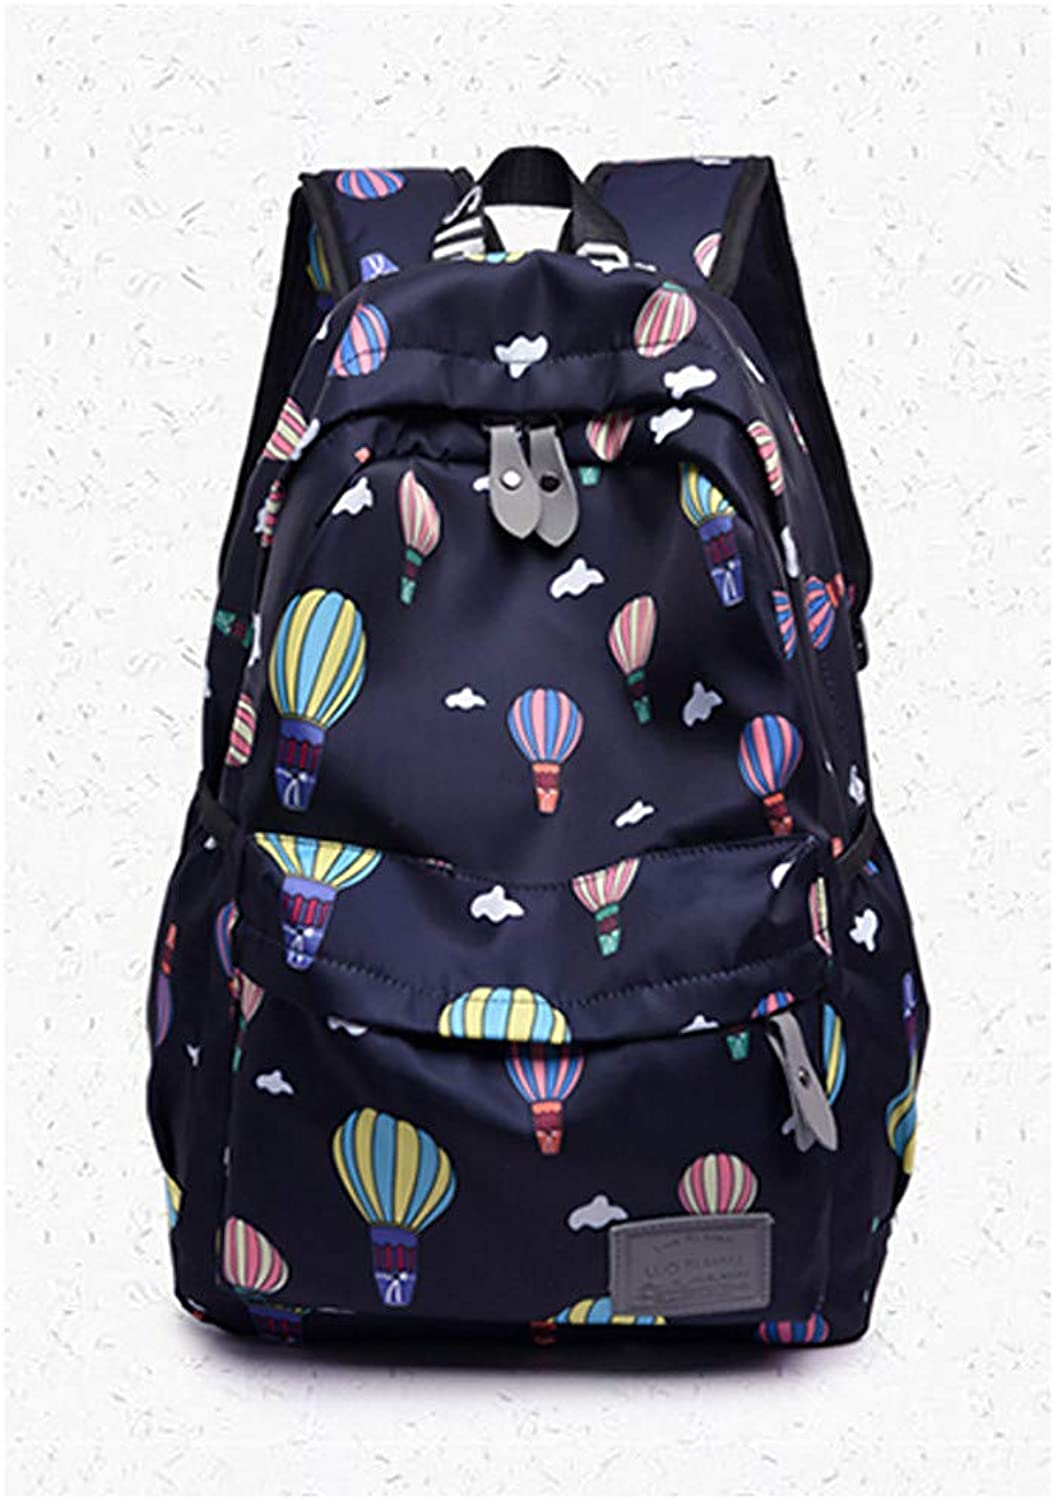 Show Time backpack:Women's Bags Oxford Synthetic Commuter Backpack Pattern Print Scenery Purple Fuchsia Sky blueee